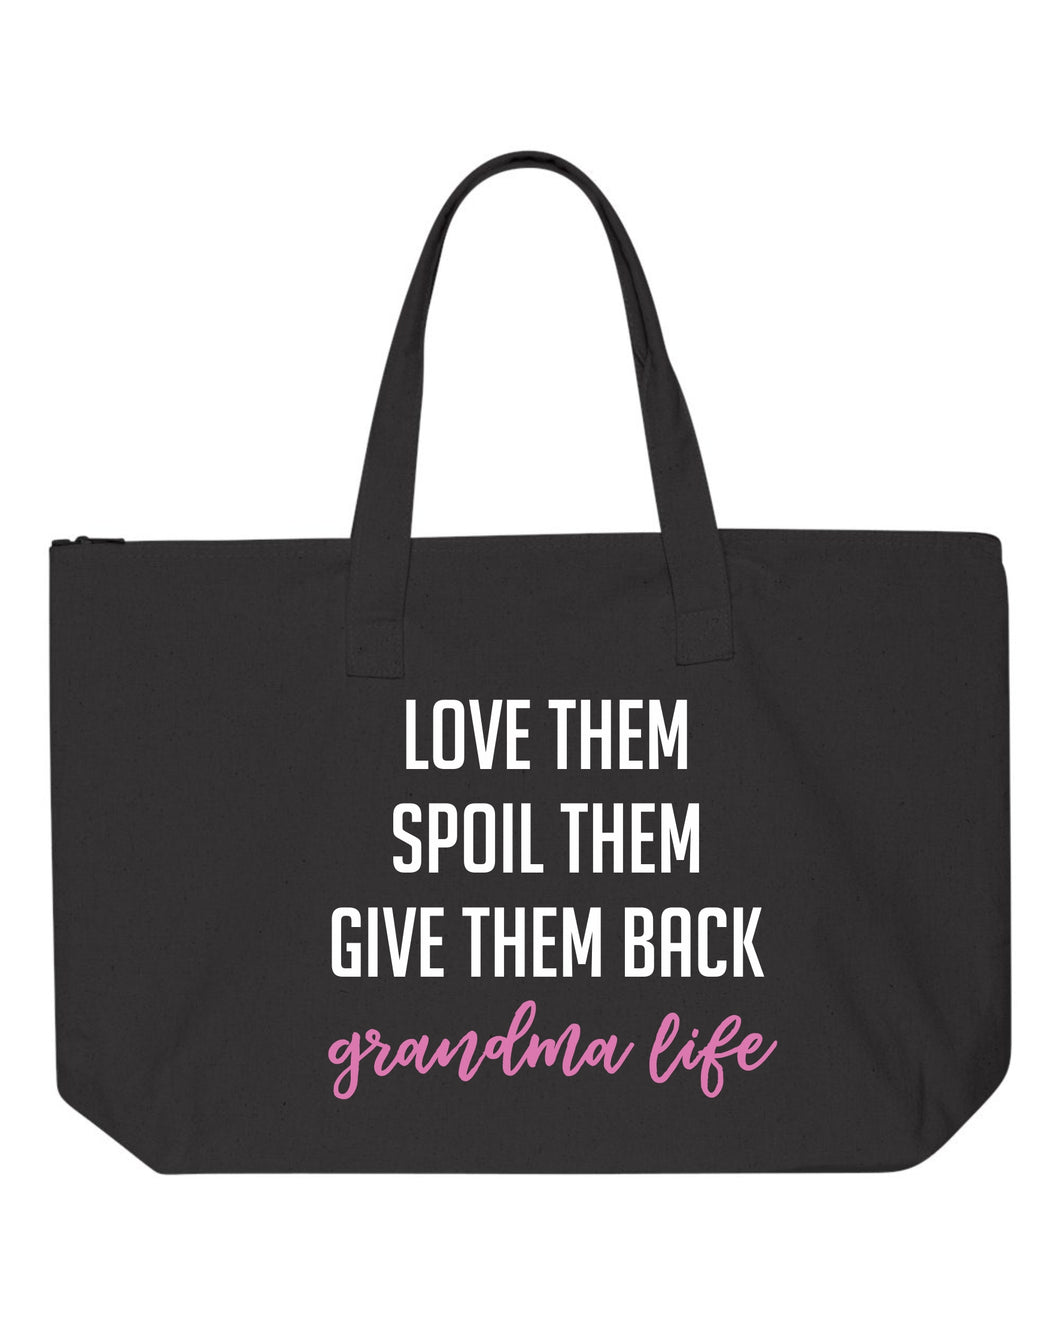 grandma-life-nanny-life-gma-grandmother-gifts-cute-christmas-mothers-day-tote-bag